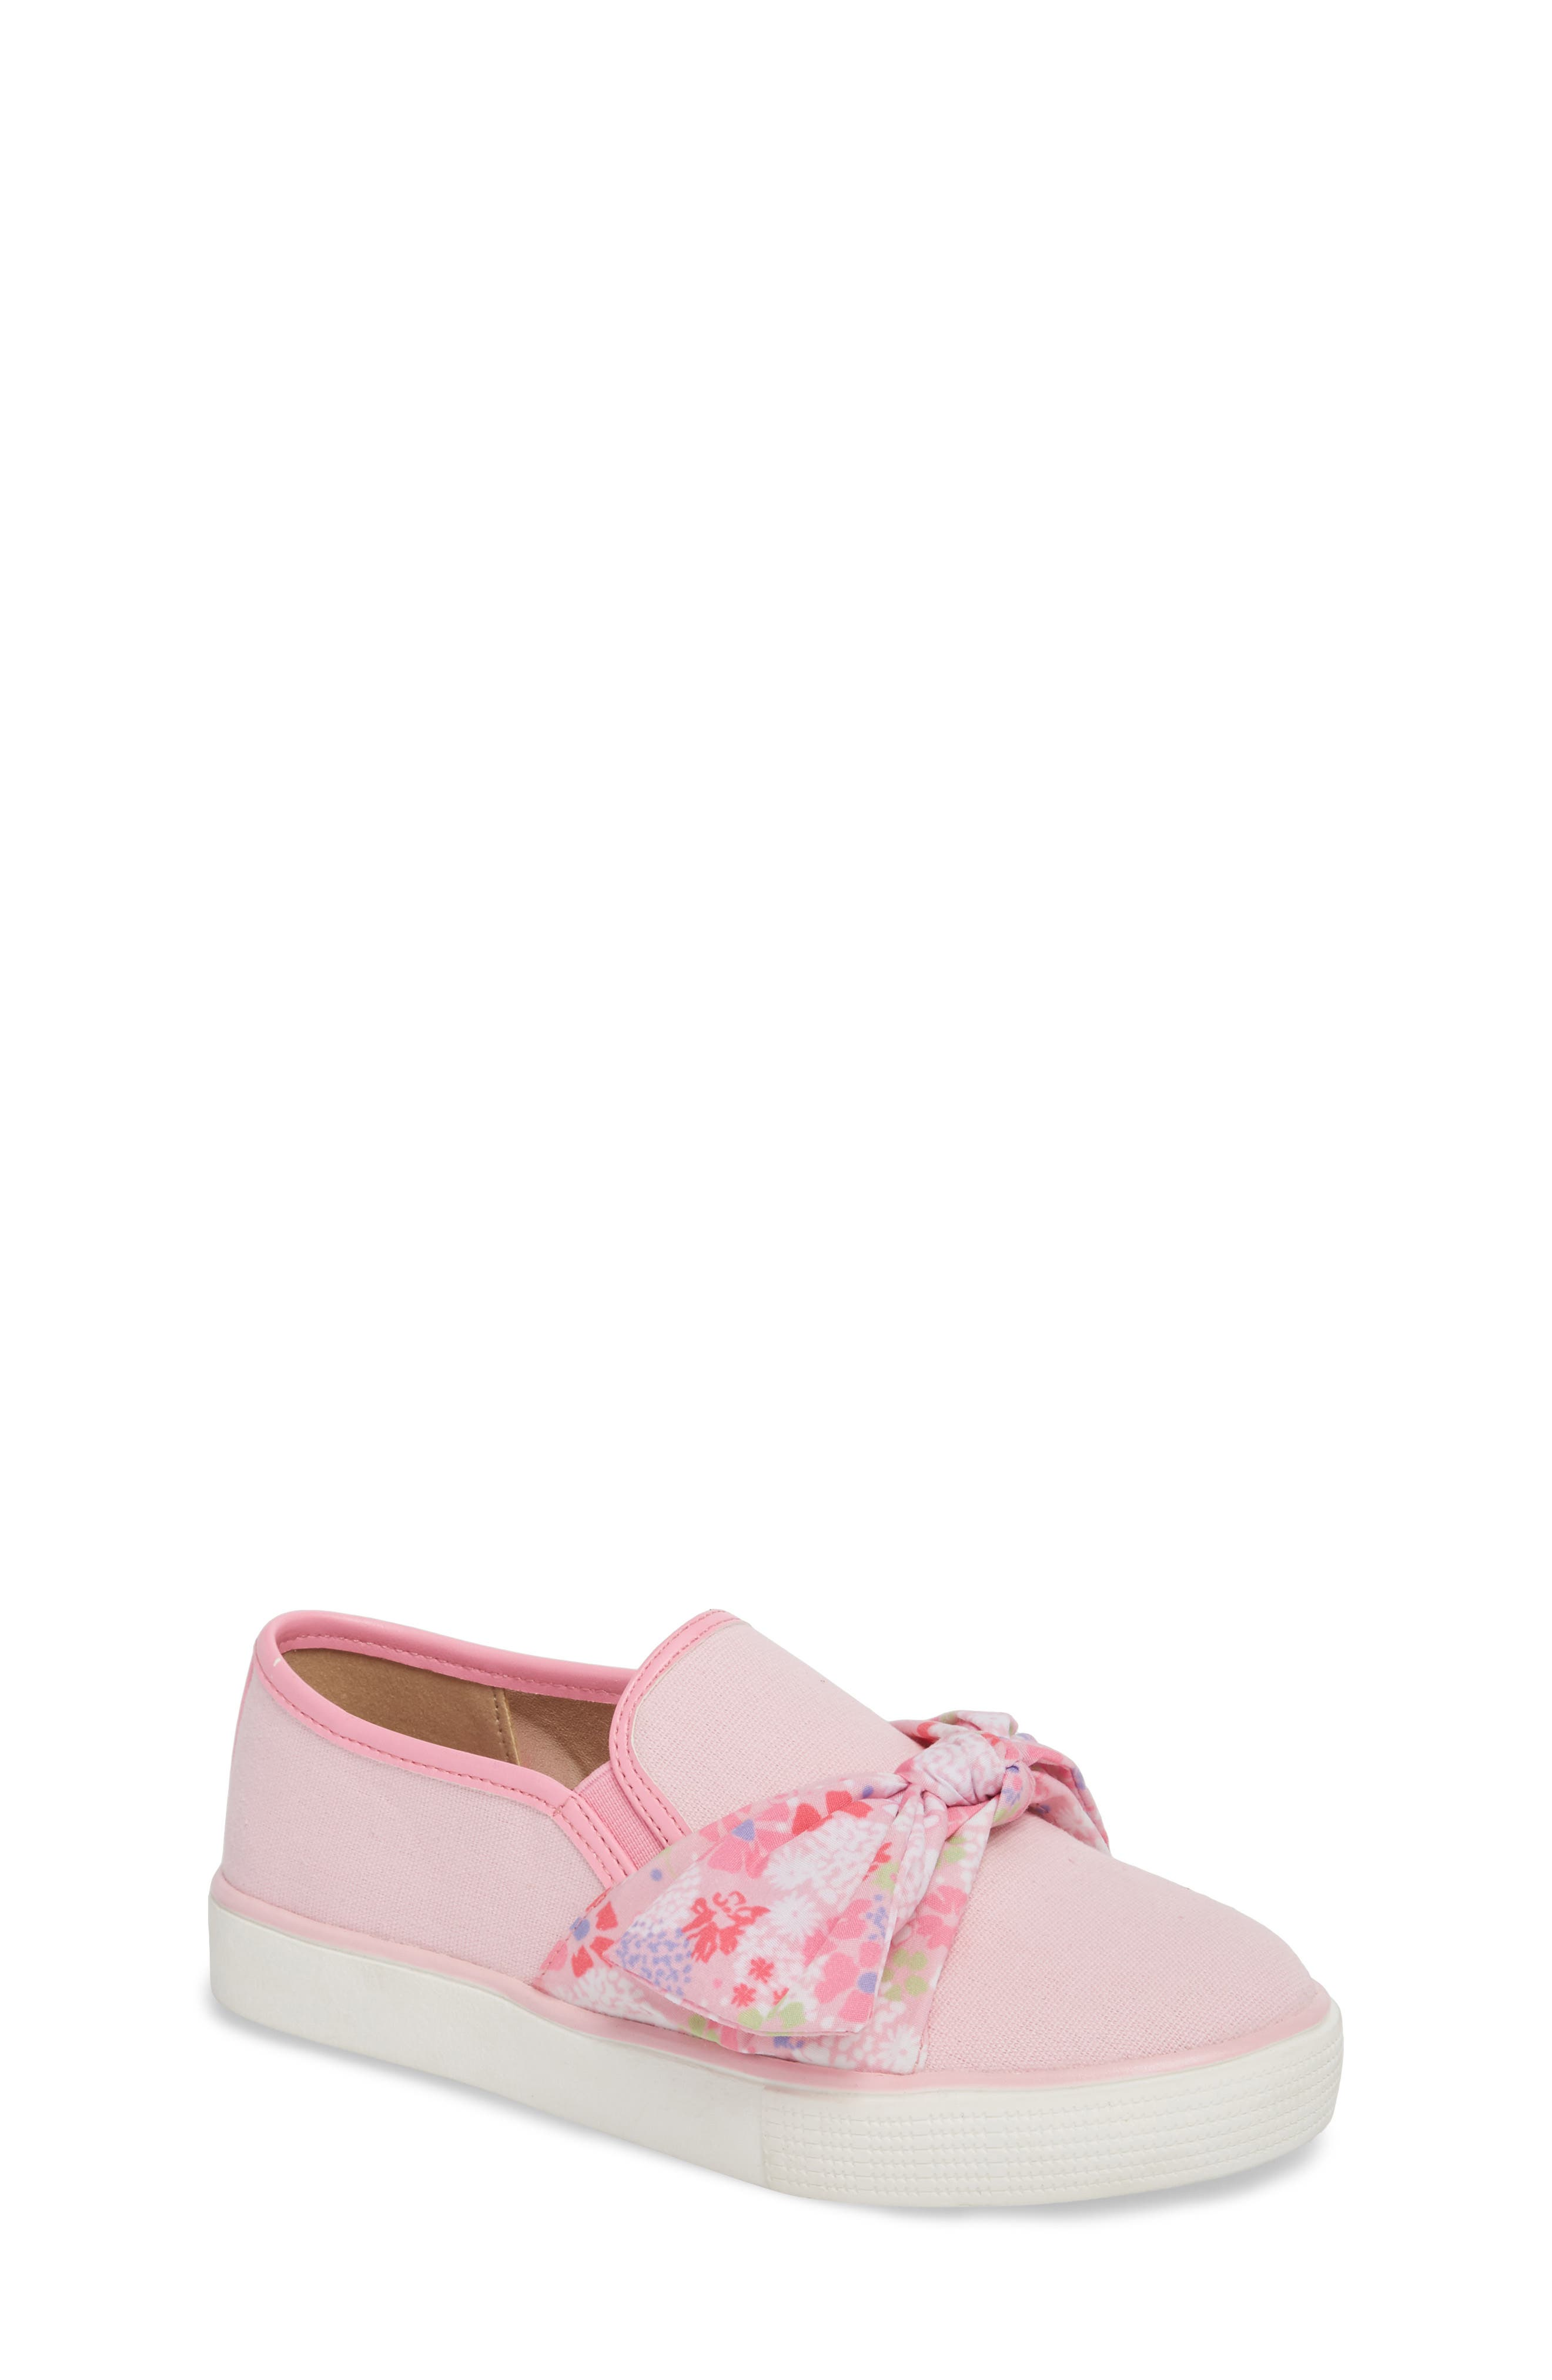 Ashlyn Bow Slip-On Sneaker,                             Main thumbnail 1, color,                             Orchid Pink